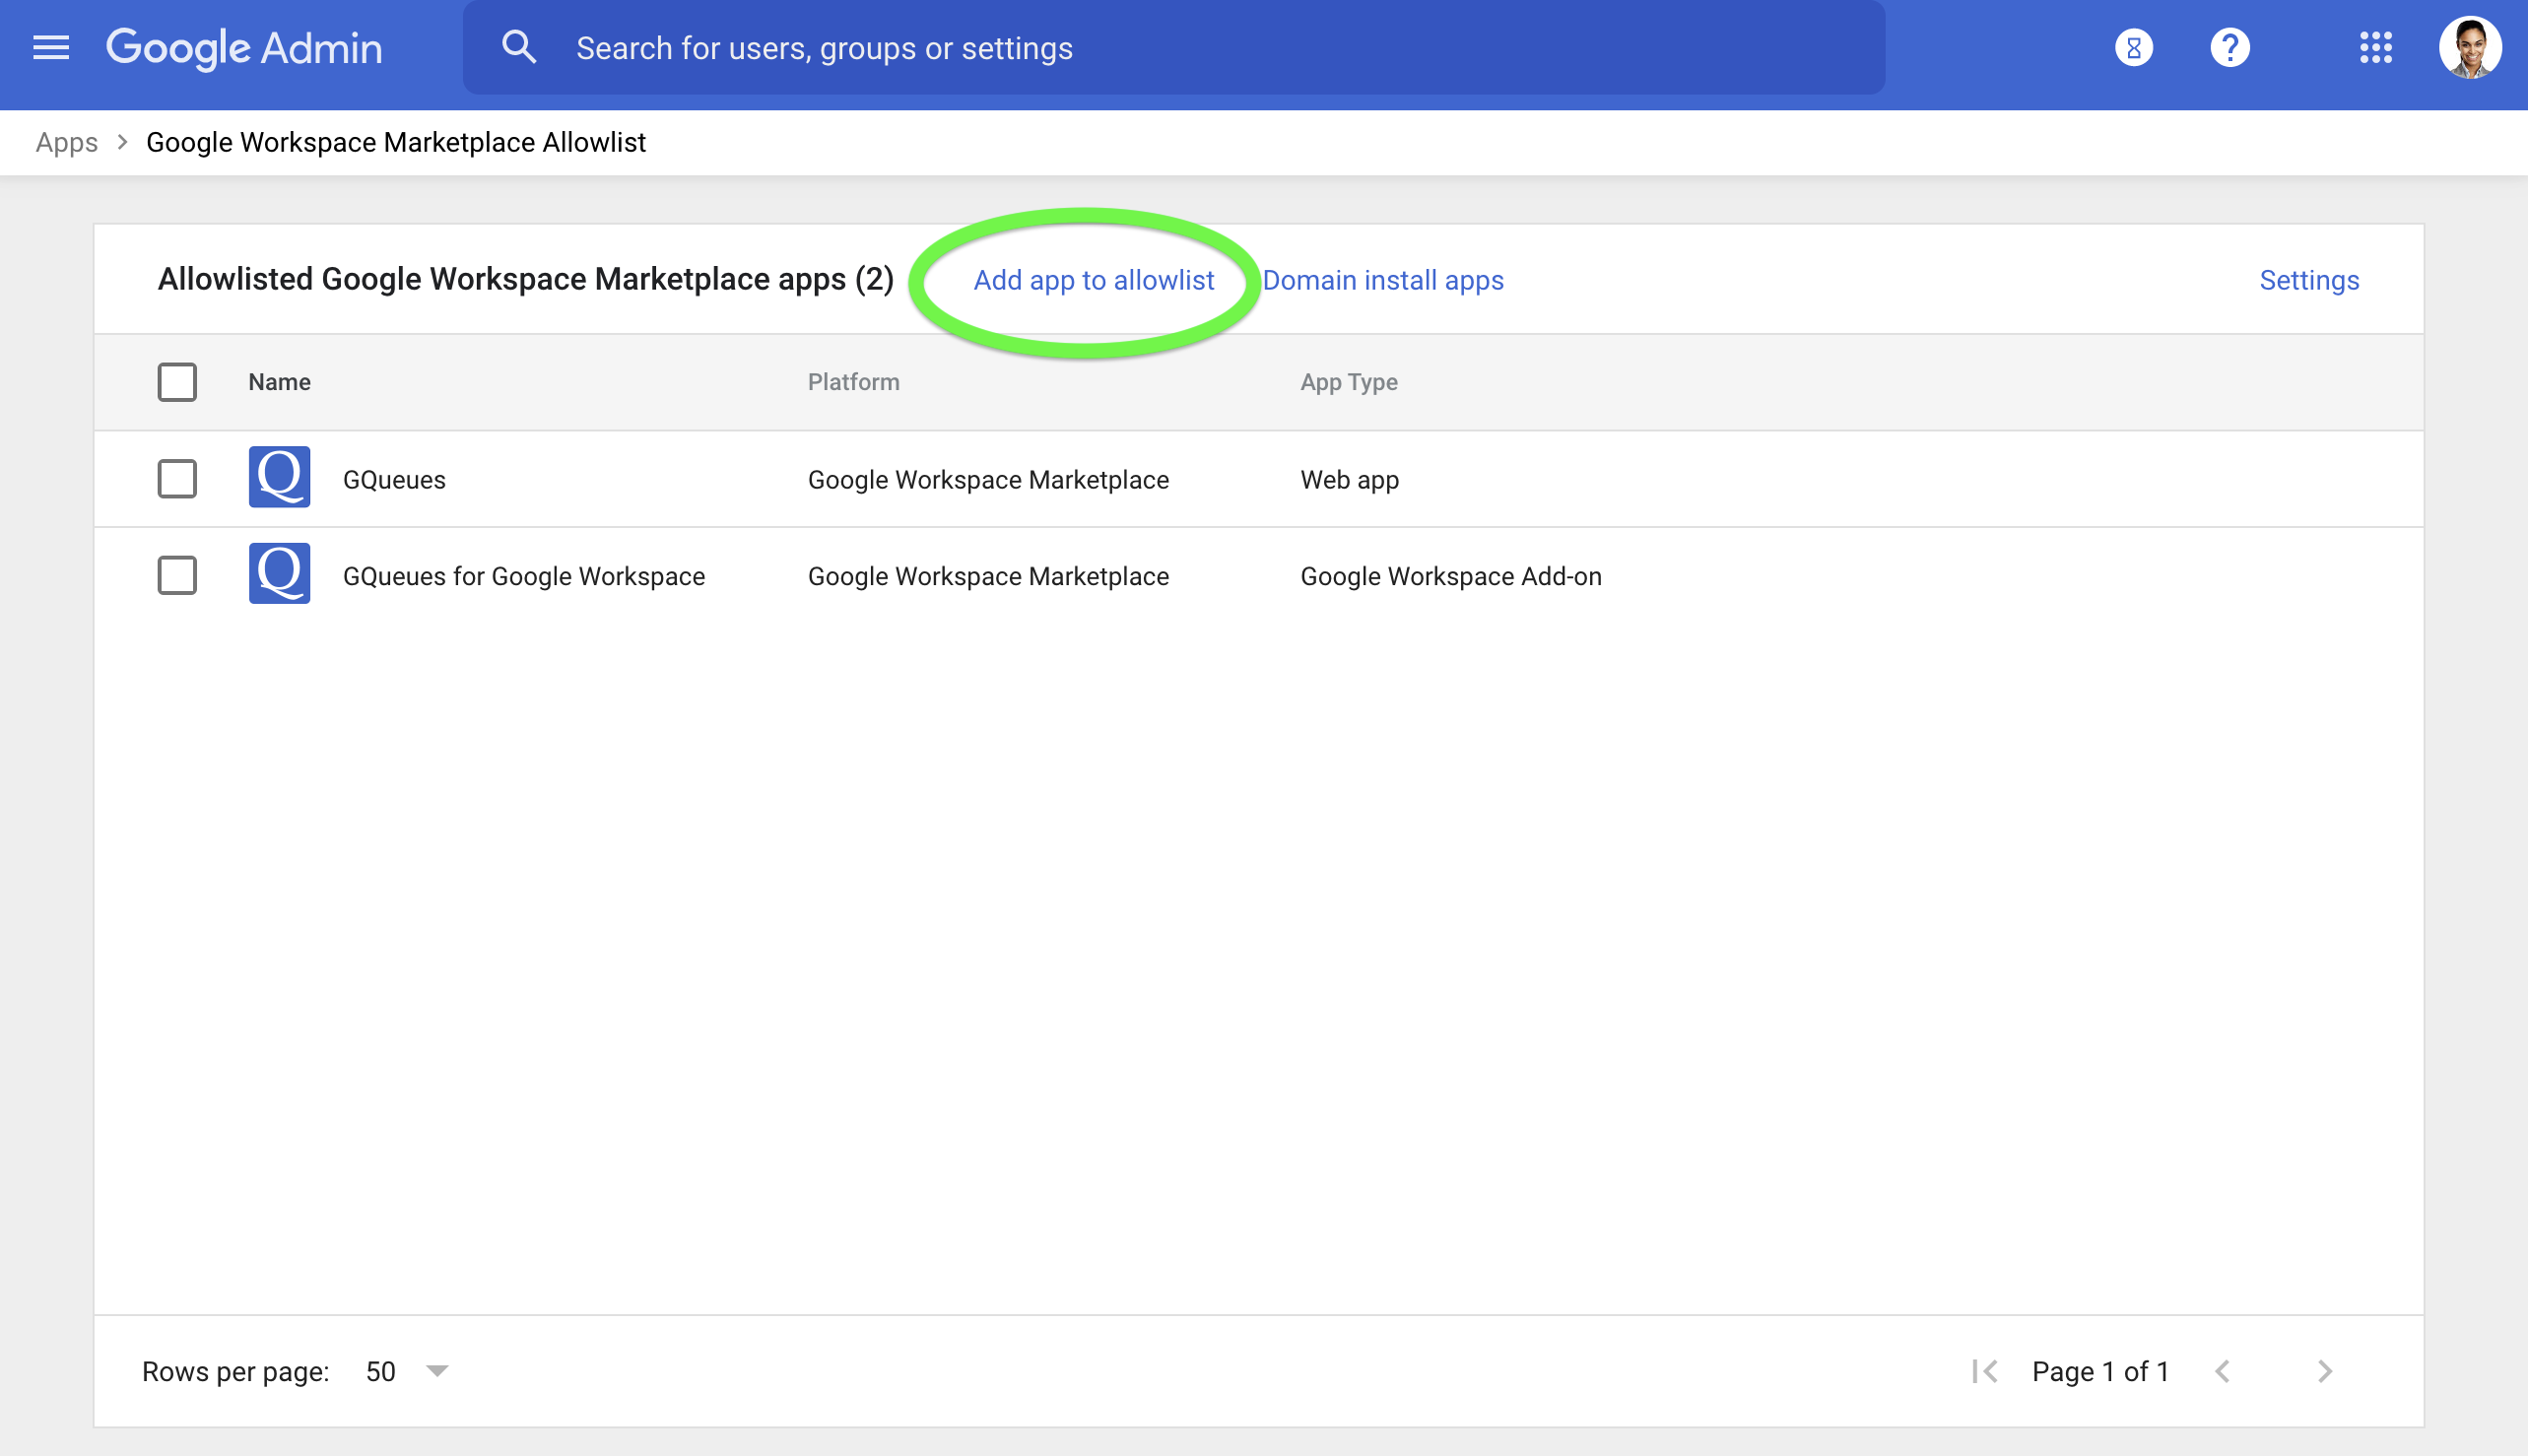 Add the GQueues for Google Workspace Add-on to your allowlist in Google Marketplace